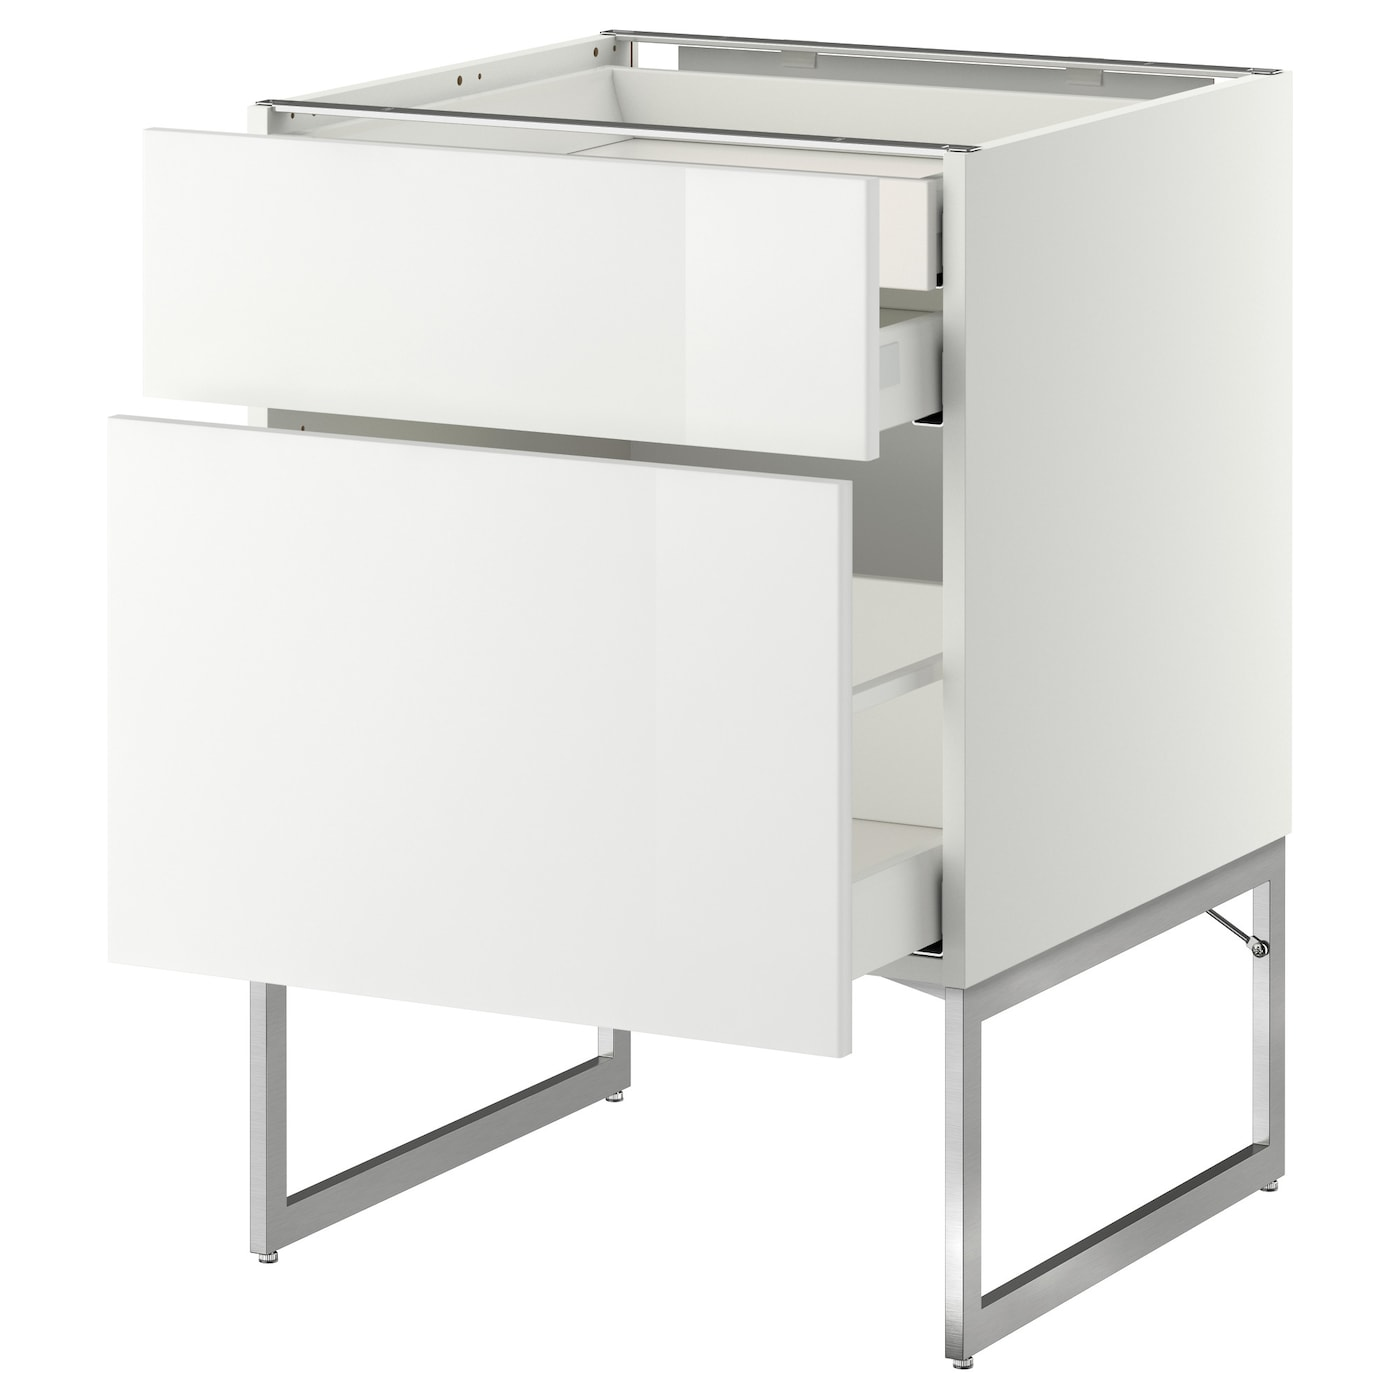 IKEA METOD/MAXIMERA base cab 2 frnts/2 low/1 hi drwr Smooth-running drawers with stop.